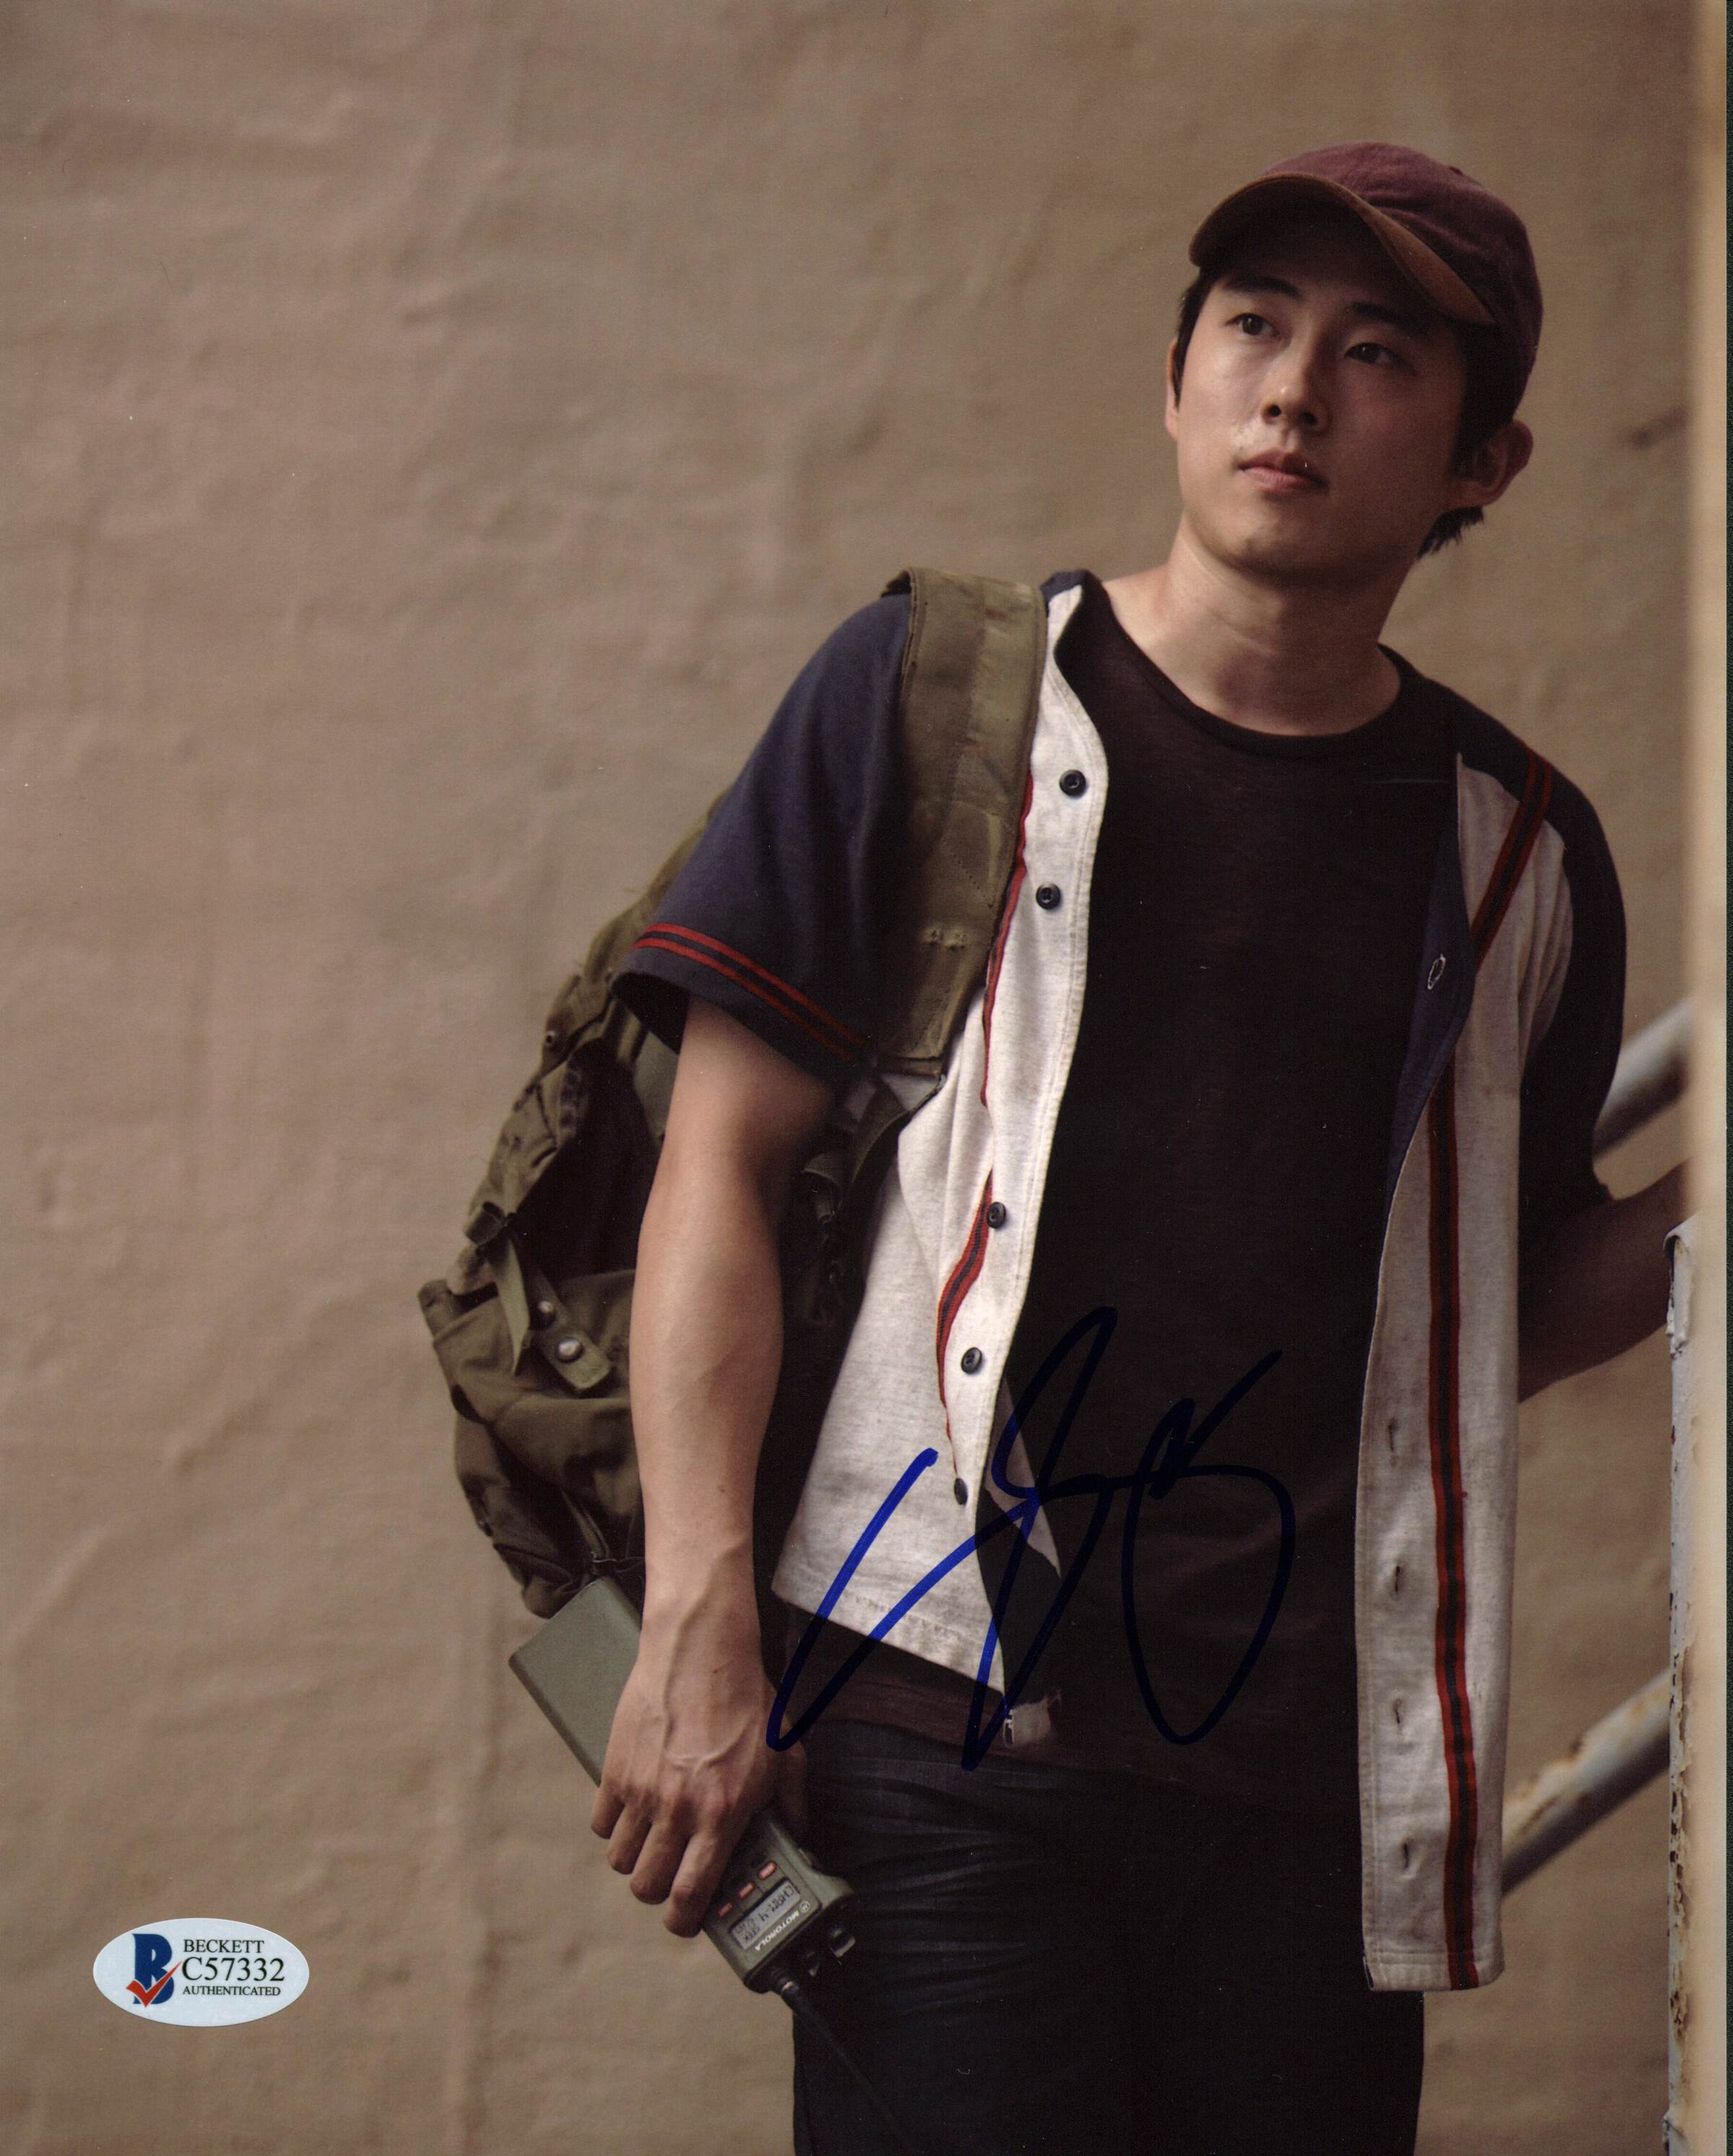 Steven Yeun The Walking Dead Authentic Signed 8X10 Photo PSA/DNA #W16699